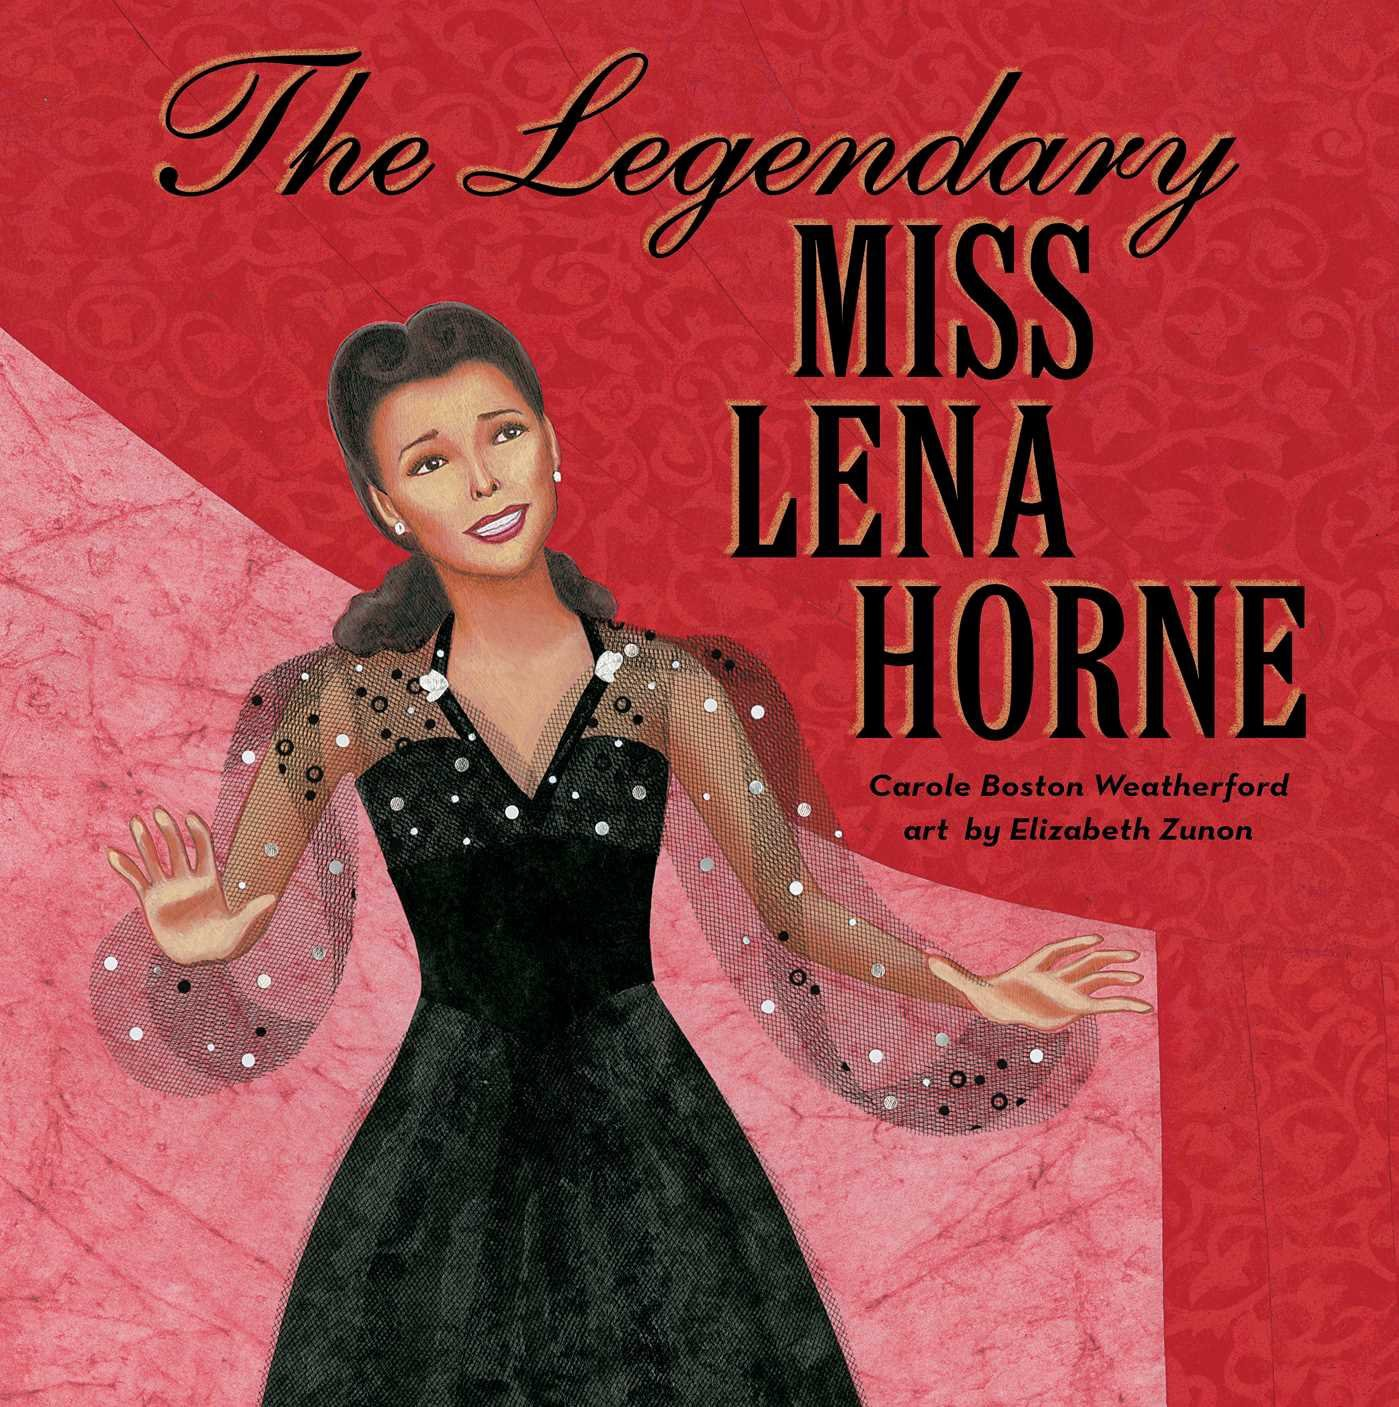 4f96f9448794cf The Legendary Miss Lena Horne by Carole Boston Weatherford, illustrated by  Elizabeth Zunon